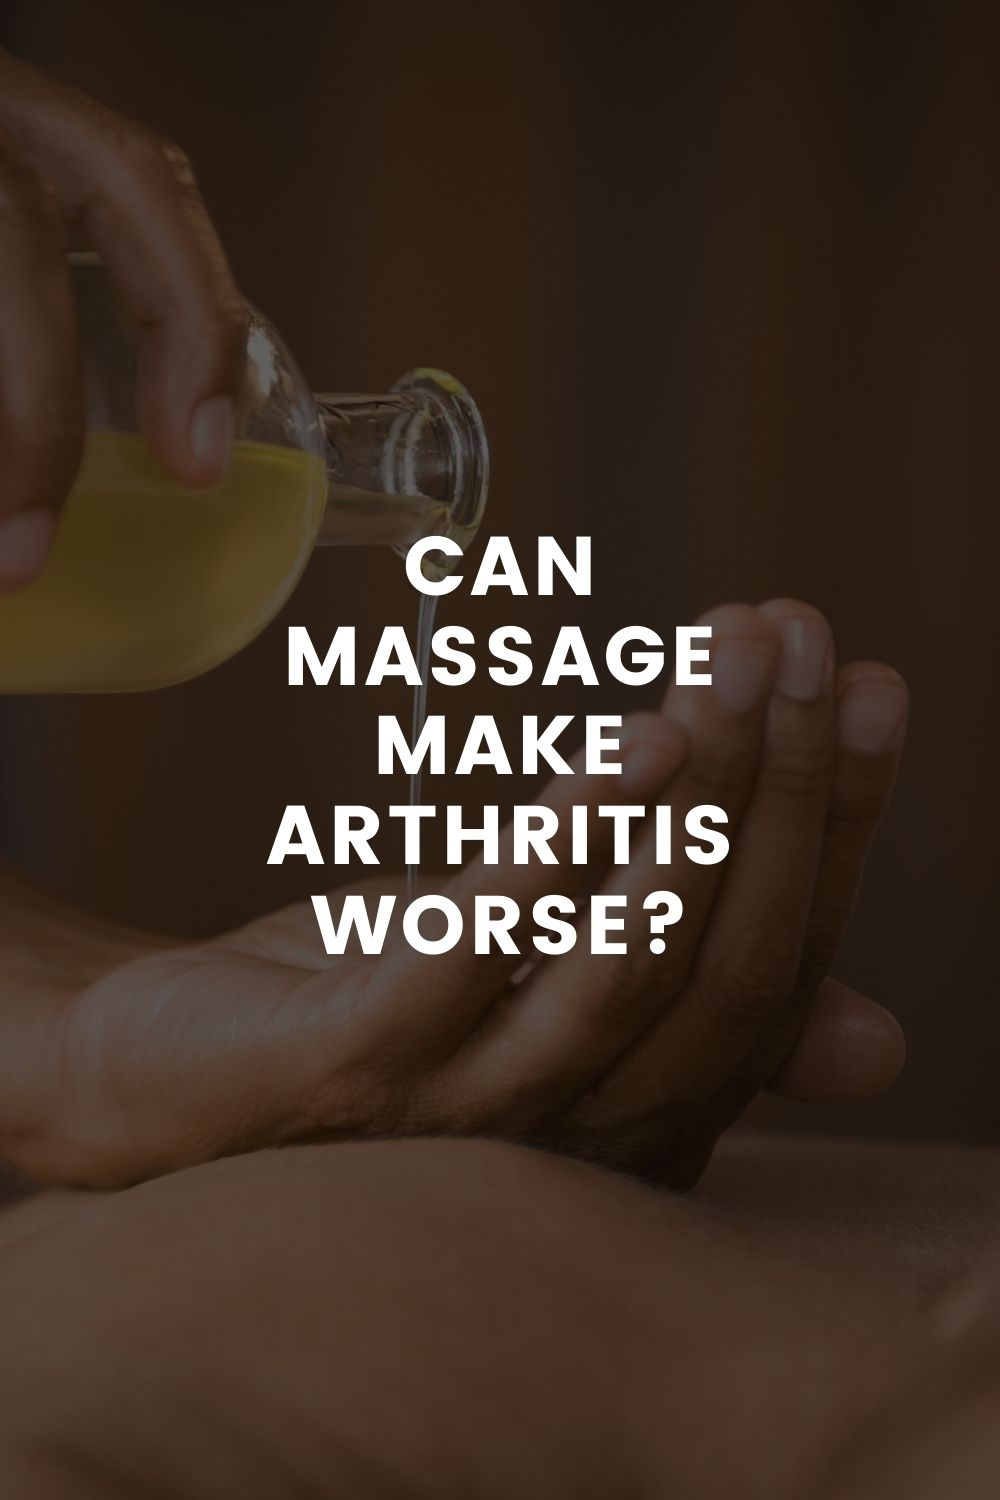 Can Massage Make Arthritis Worse?